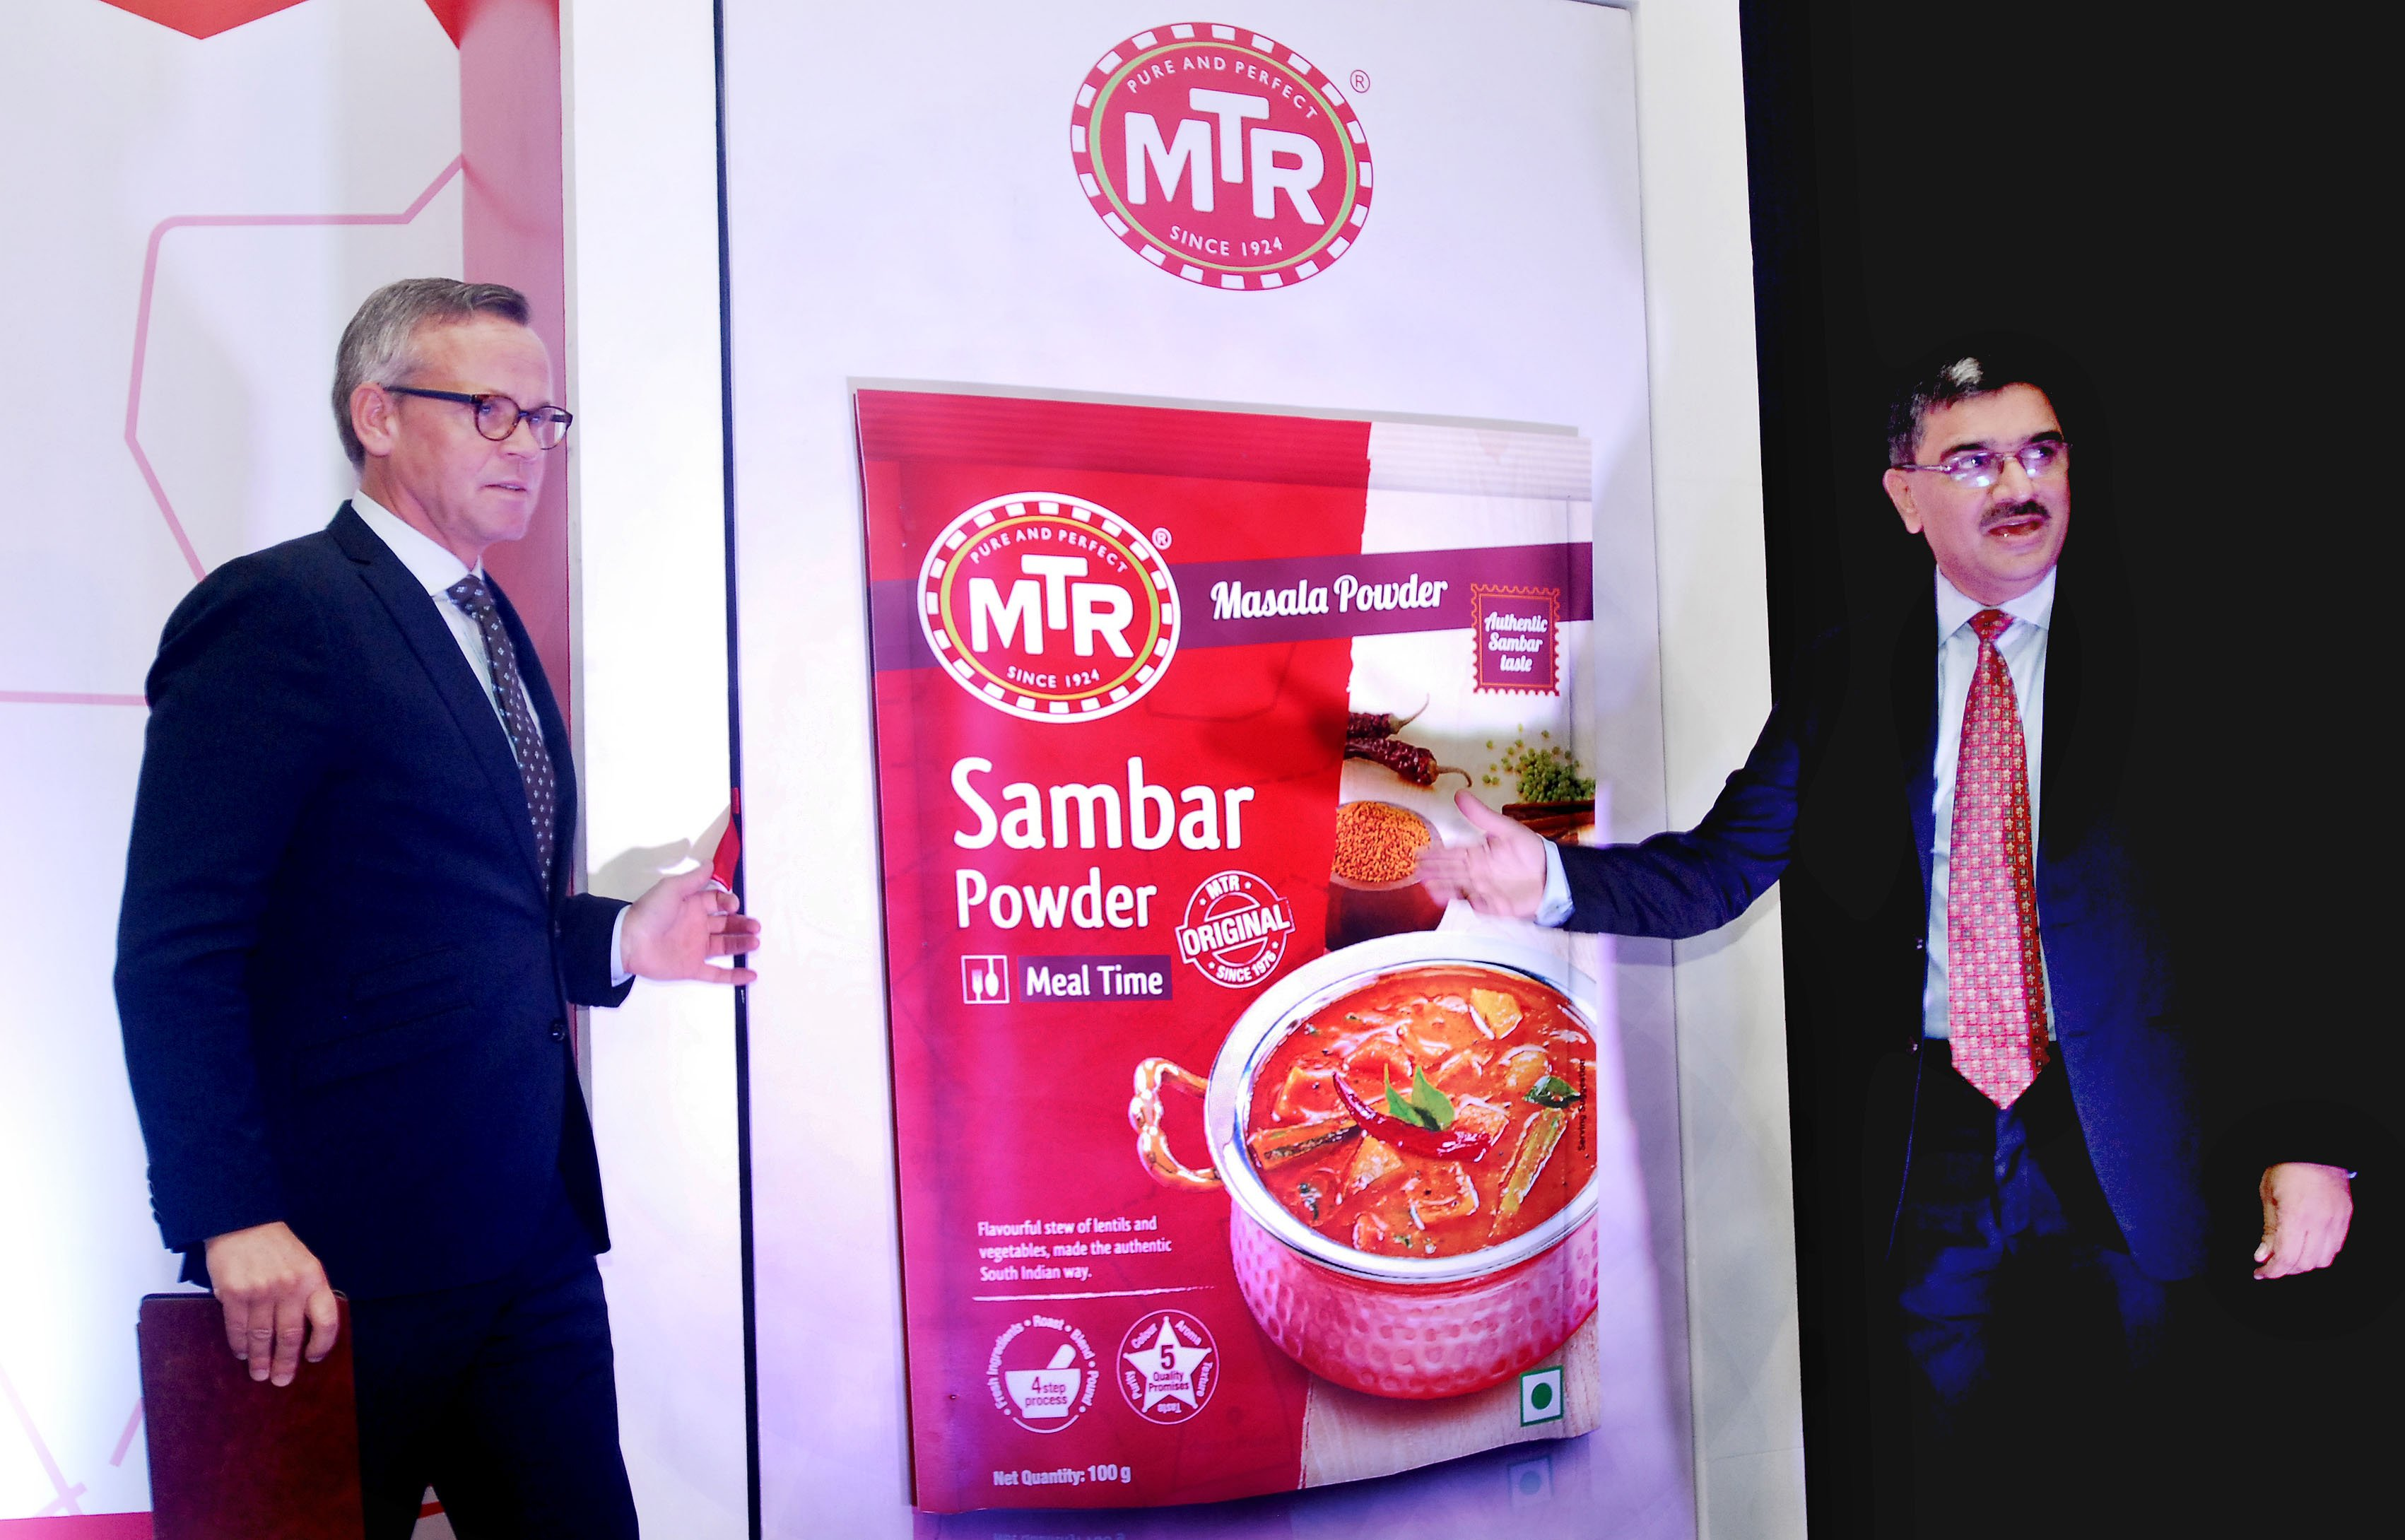 MTR Foods Becomes Future-Ready With An All New Brand Identity